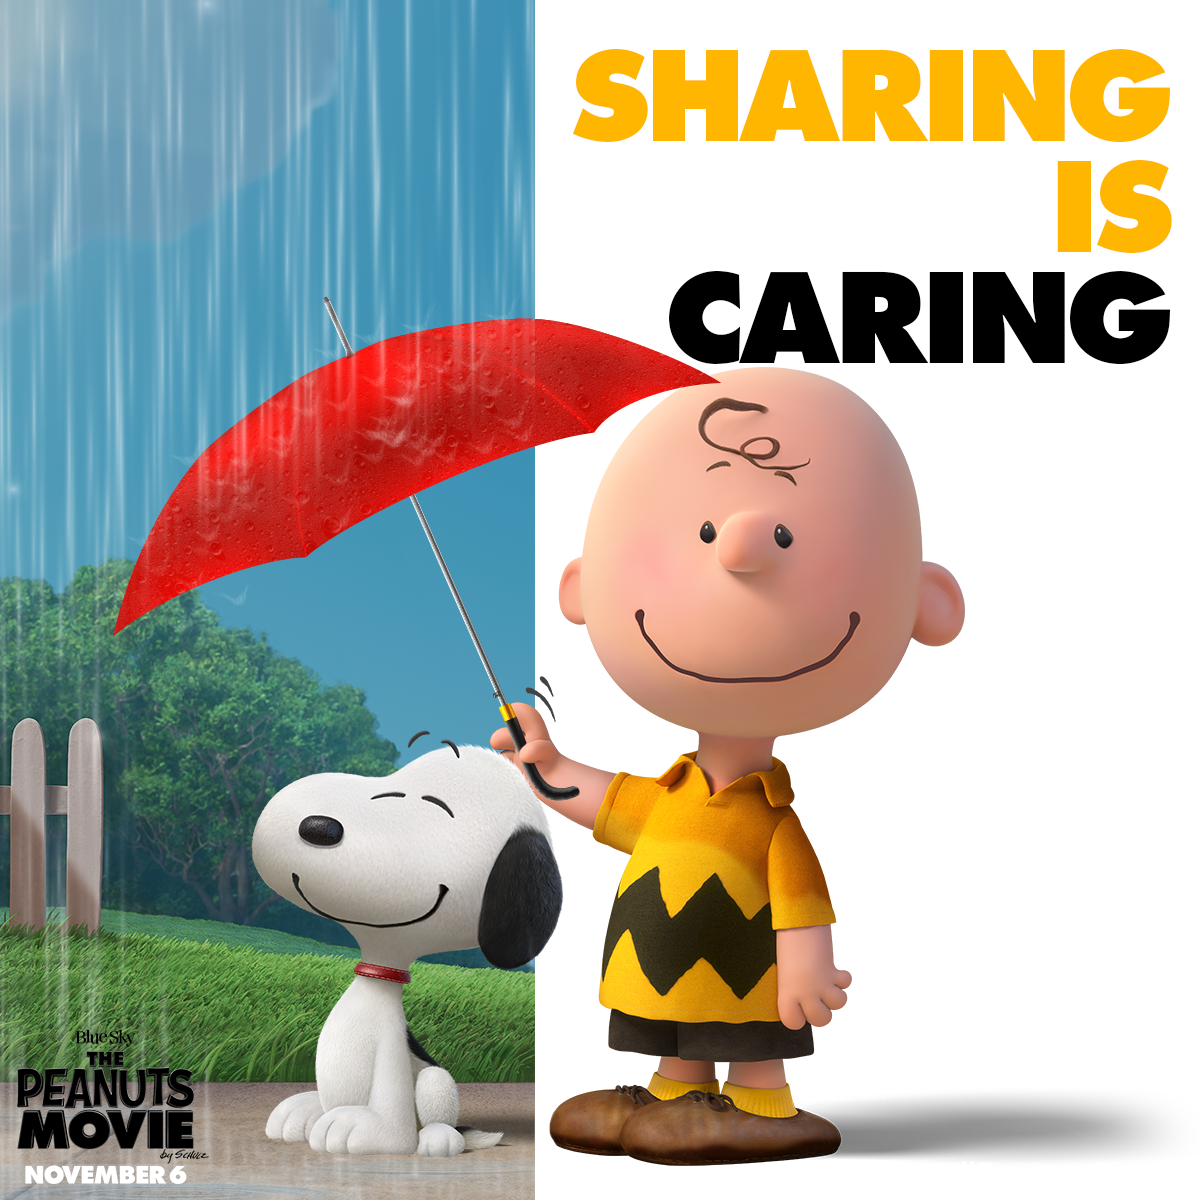 dd2f4d0b6 Sharing is caring! Watch the Peanuts Movie gang put their best foot ...